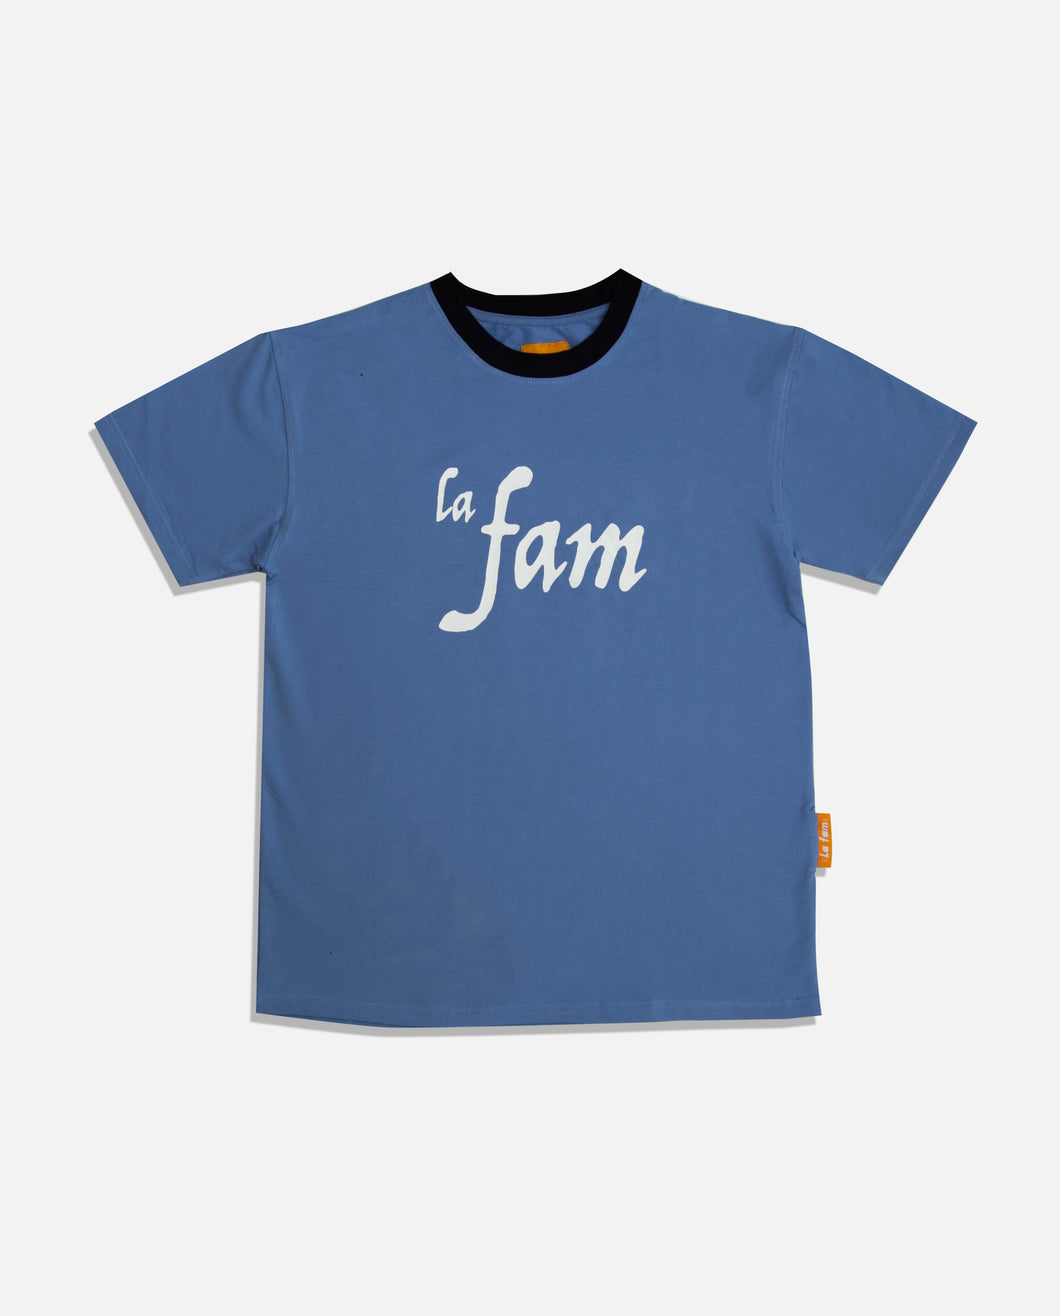 'WE START AND END WITH THE FAM' BLUE - La Fam Amsterdam-streatwear-fashion-amsterdam based-amsterdam streatwear-kledingmerk-amsterdams kledingmerk